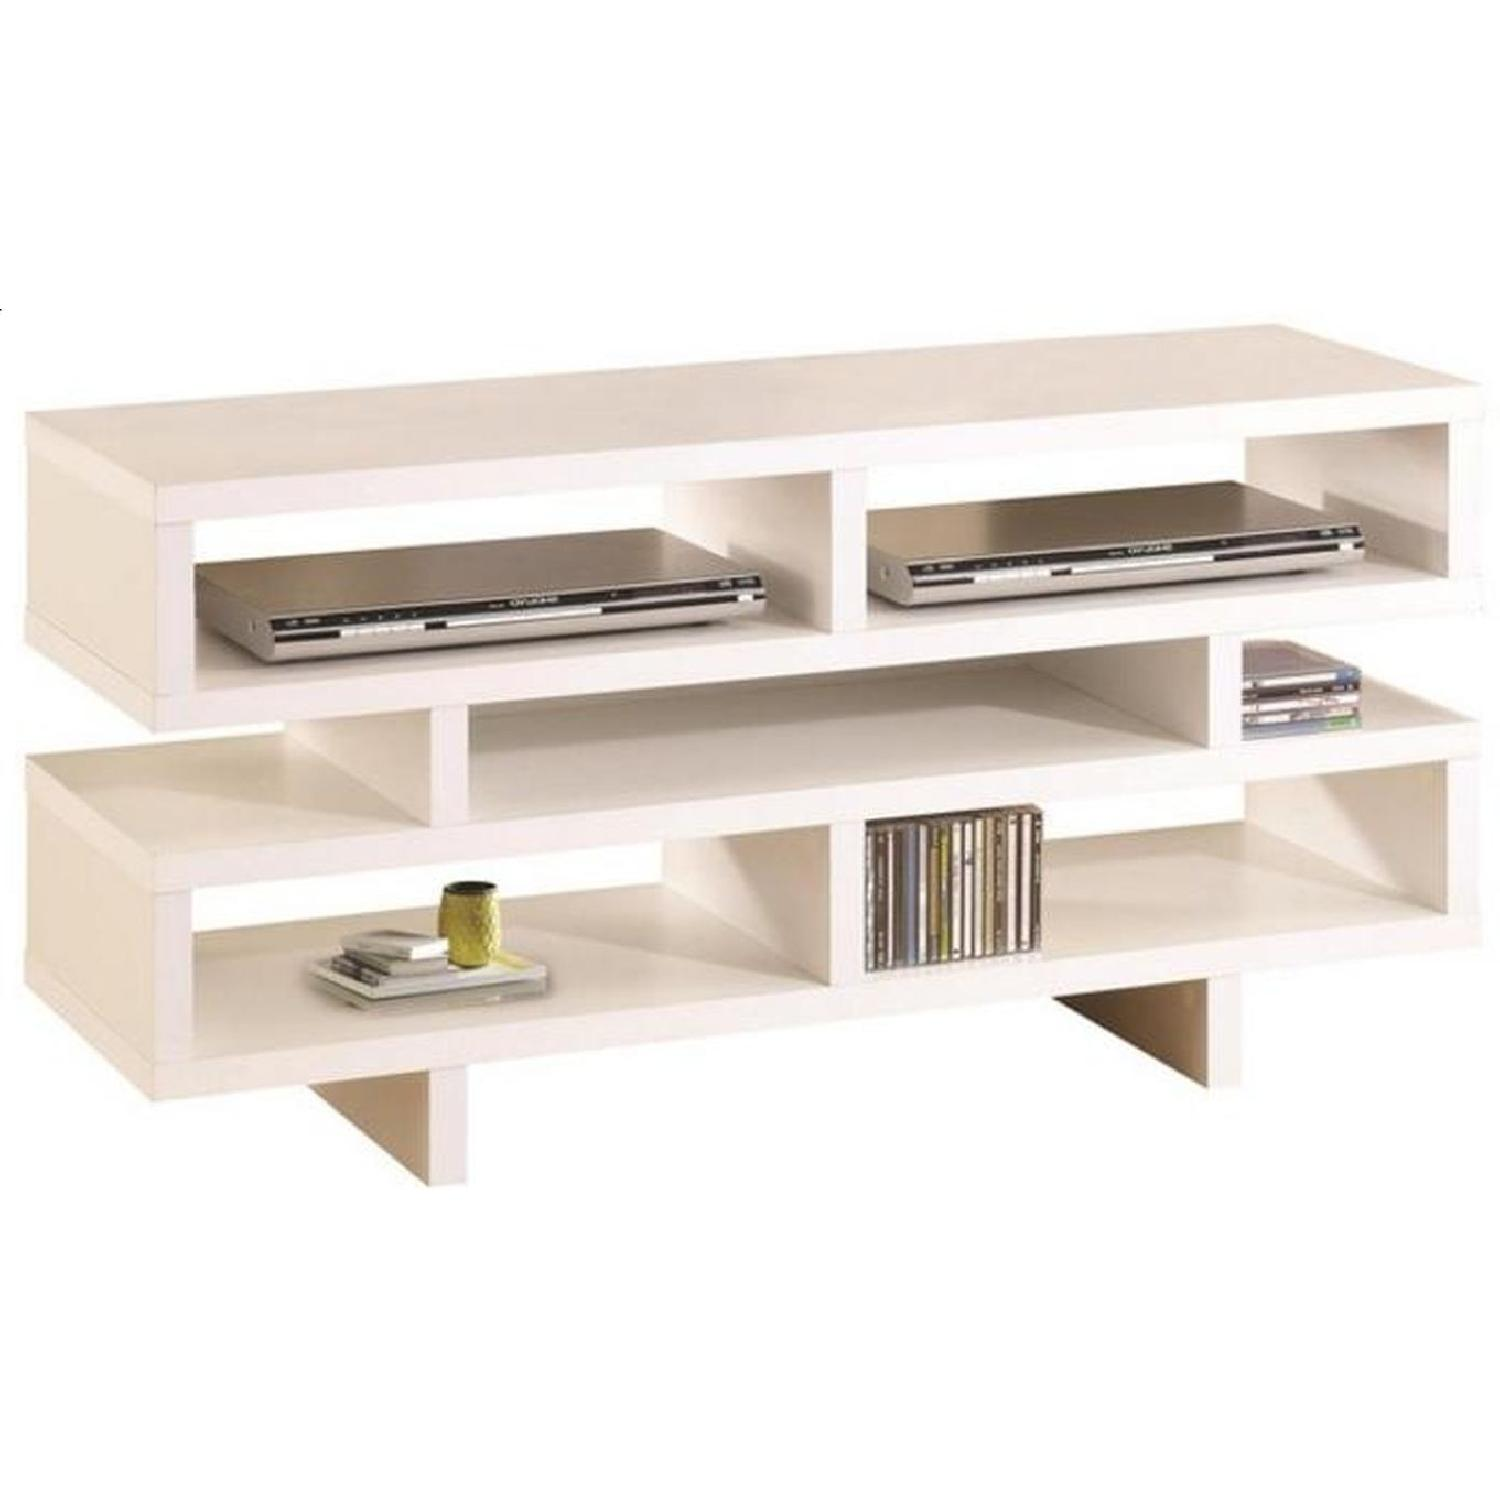 Modern TV Console in White Finish w/ Open Shelf Design - image-0